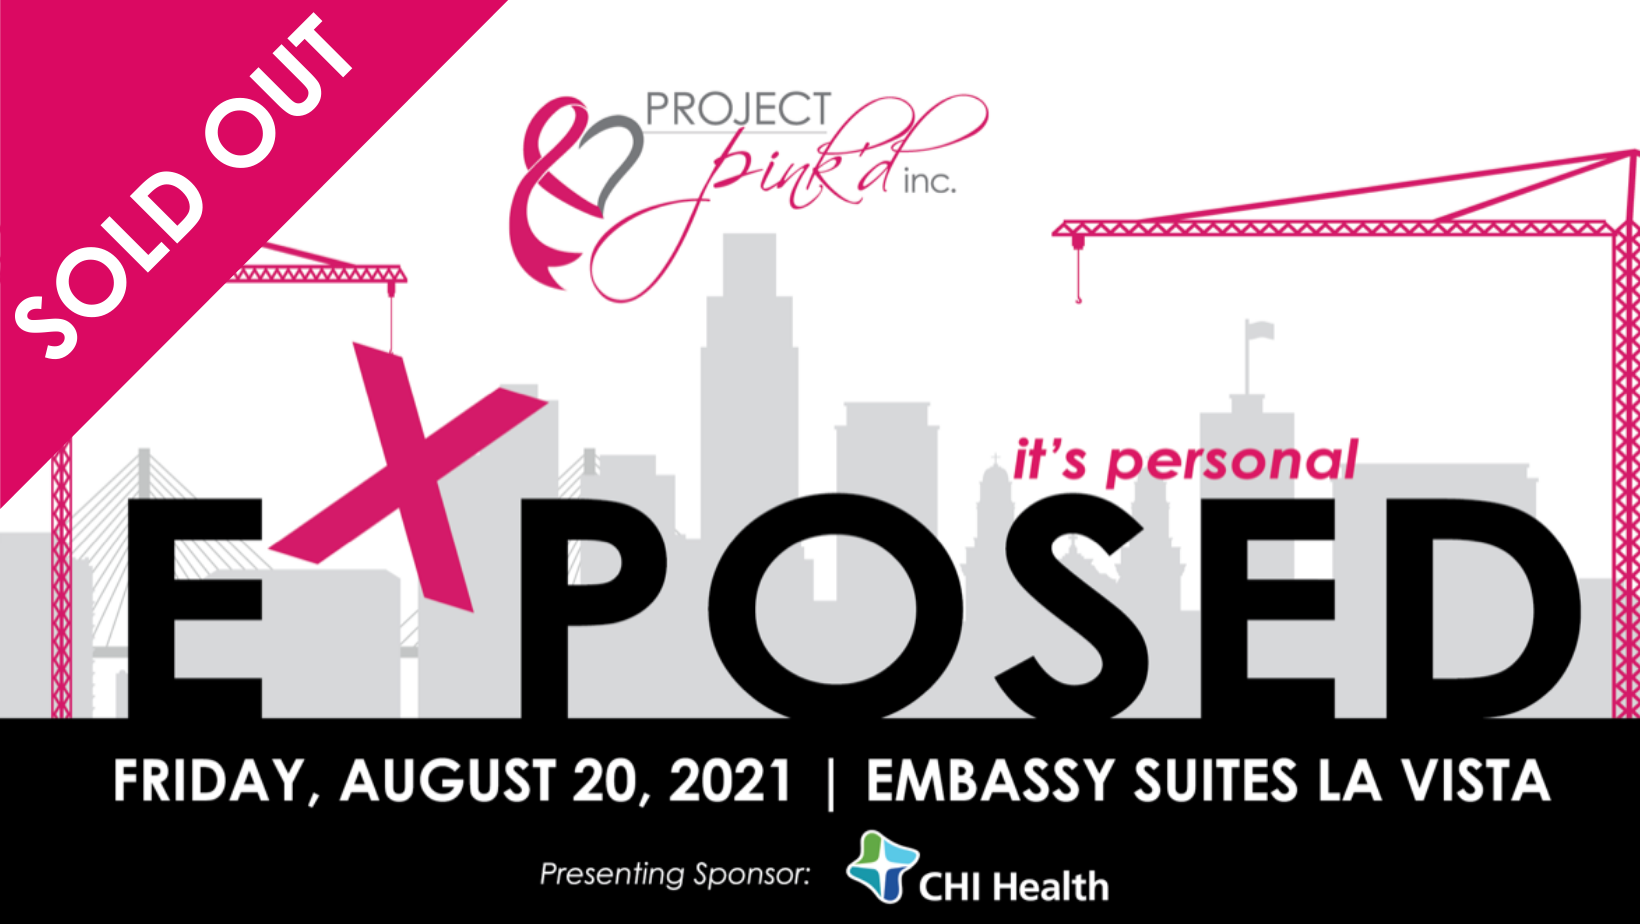 Project Pink'd EXPOSED: It's Personal 12th Annual Benefit Raises Over Half a Million Dollars for Breast Cancer Survivors